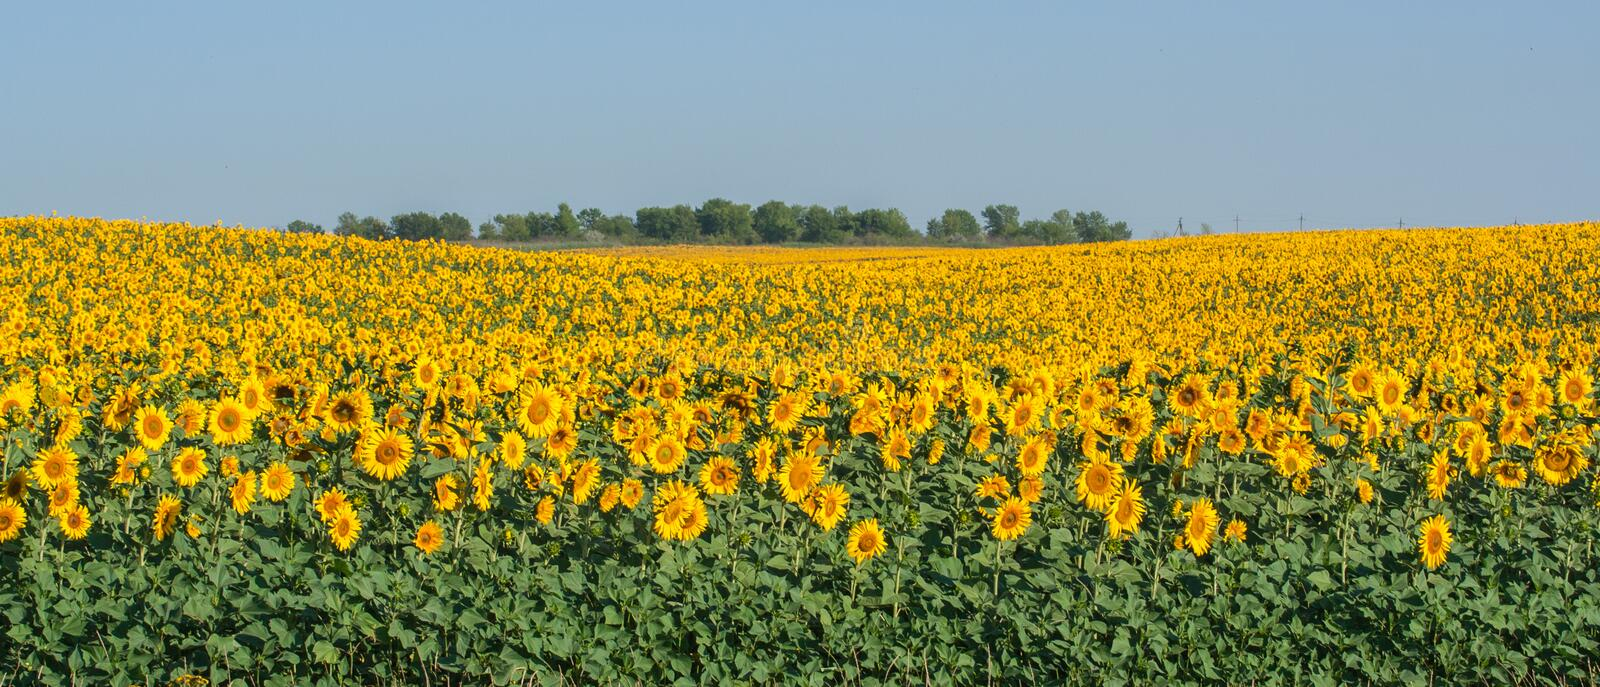 Summer sunflower field royalty free stock photo